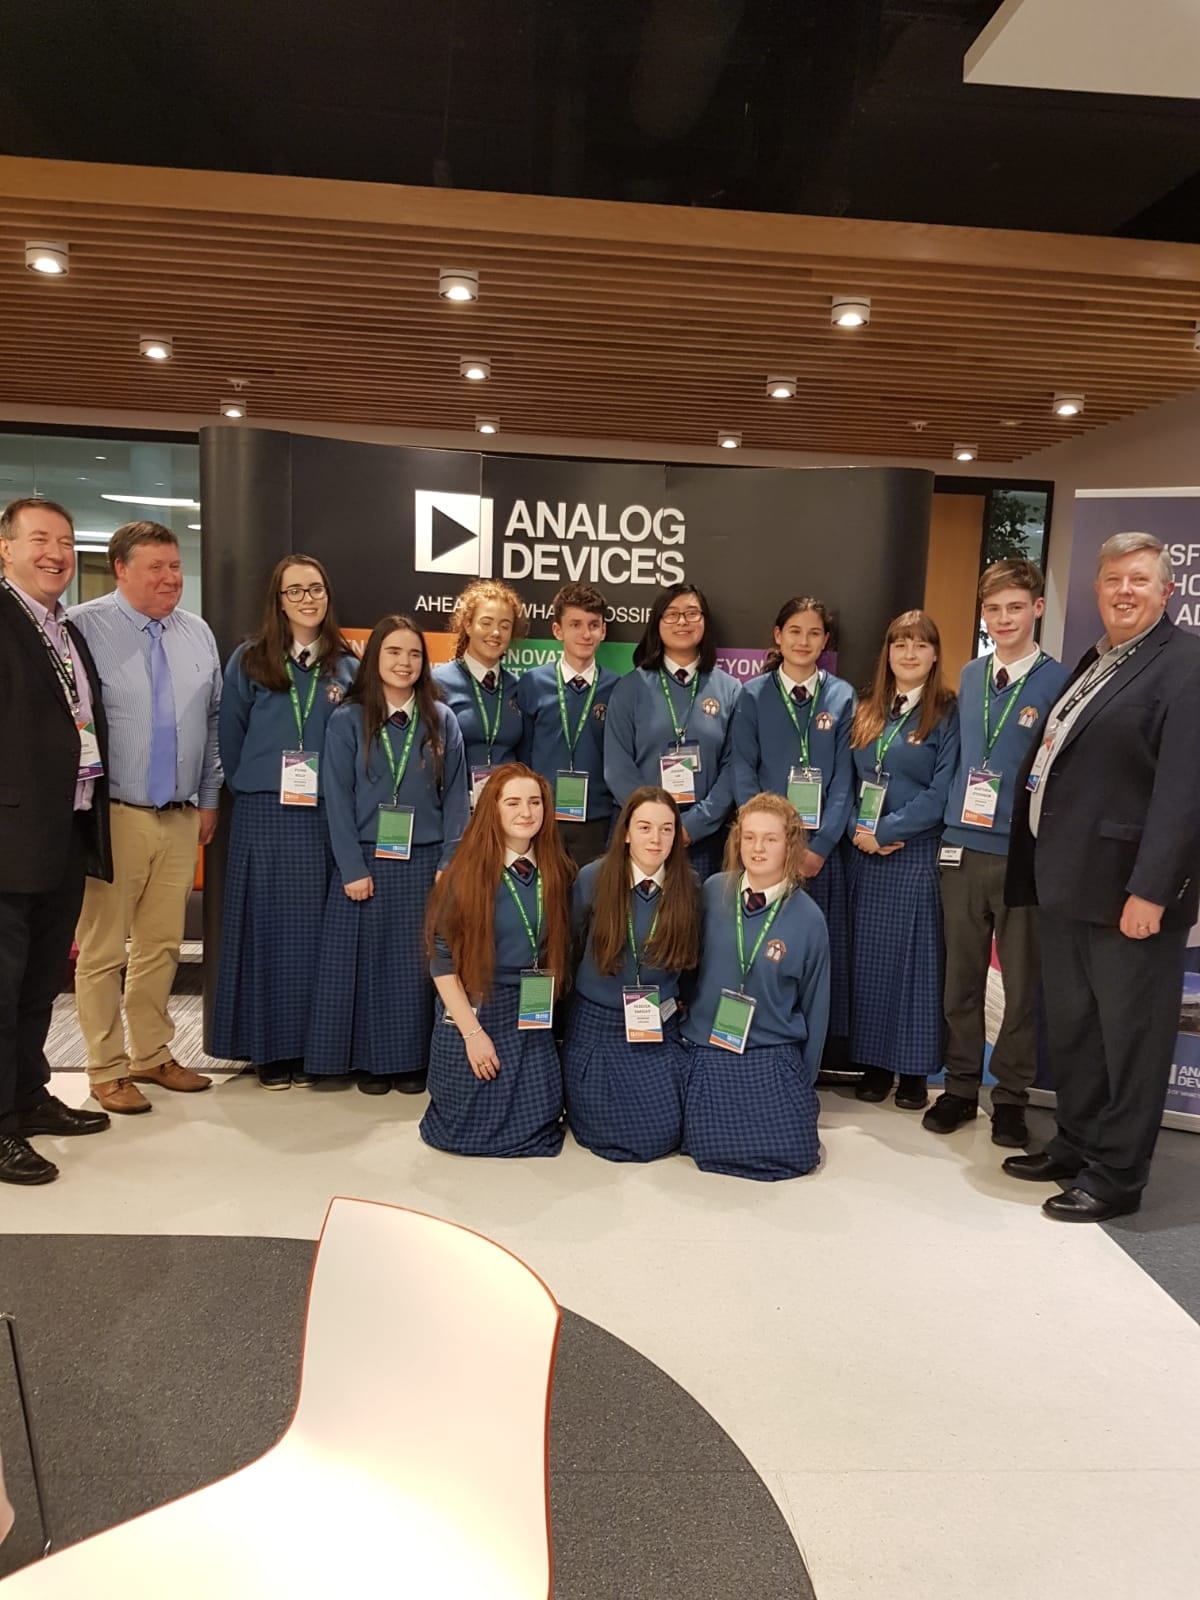 Desmond College BT Young Scientist and Technology 2019 finalists pictured at a host event organised by Analog Devices